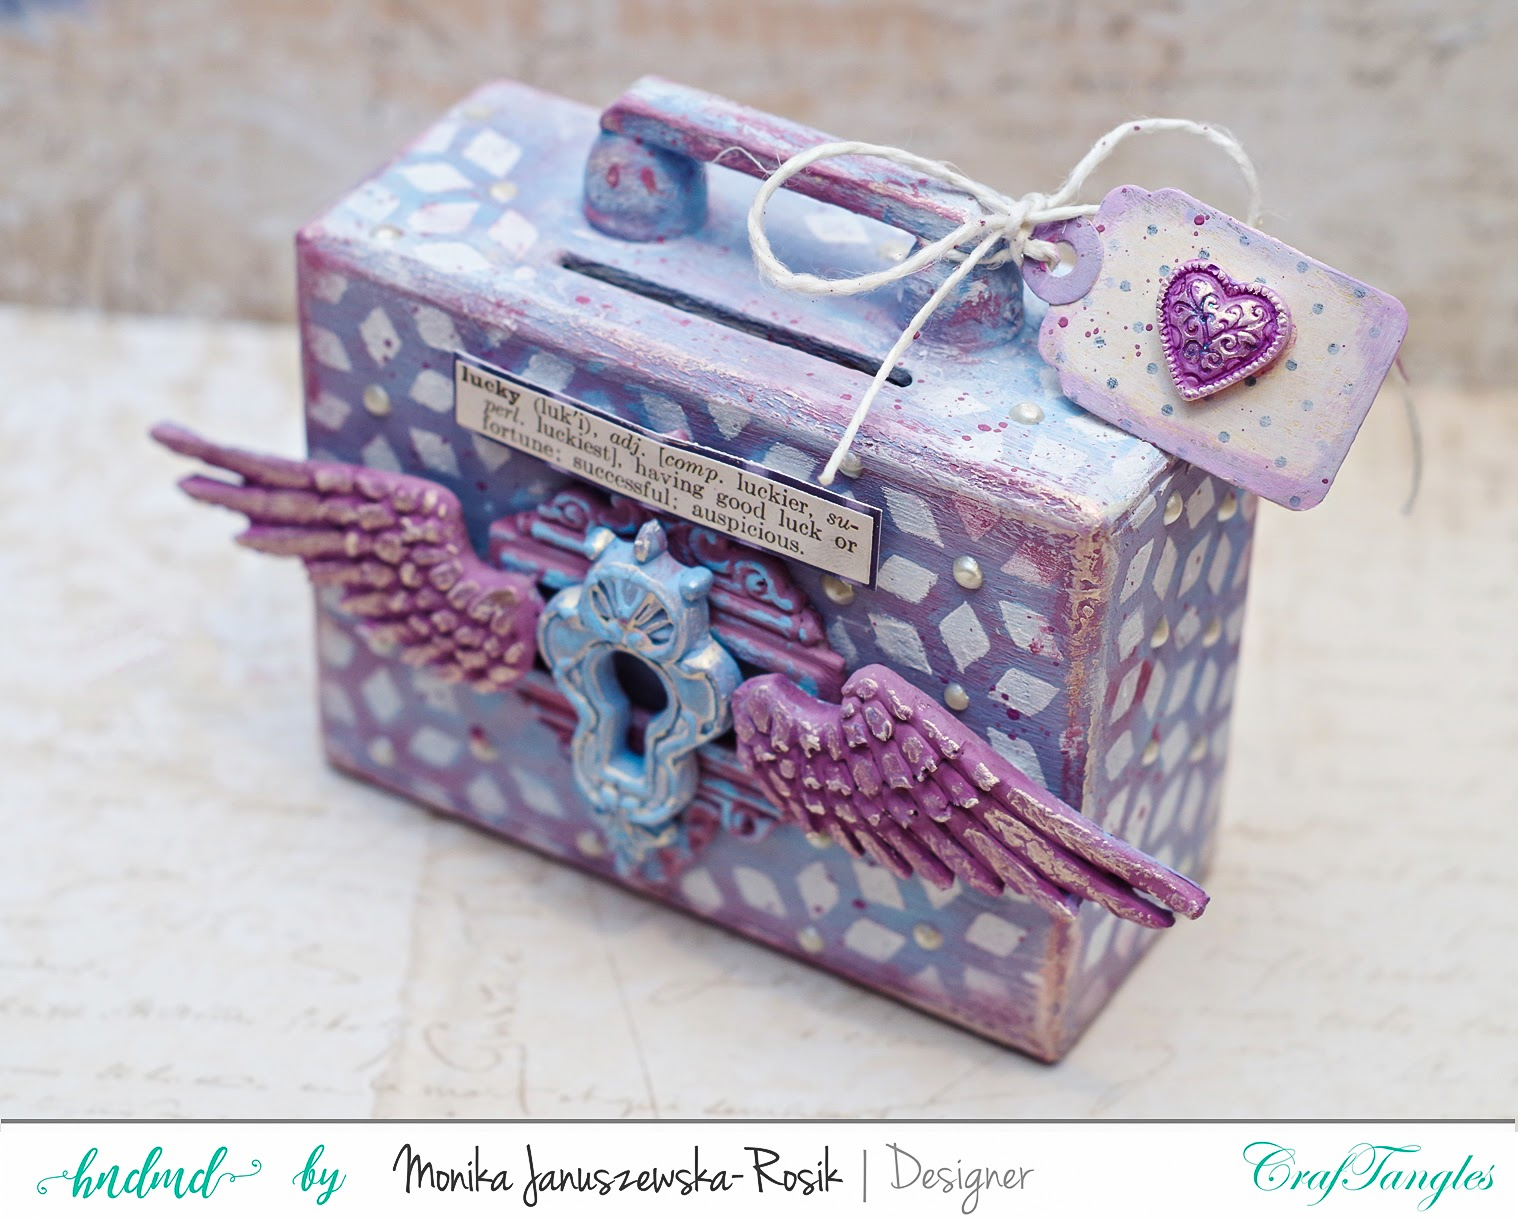 Altered moneybox painted with CrafTangles Chalky Paints 3